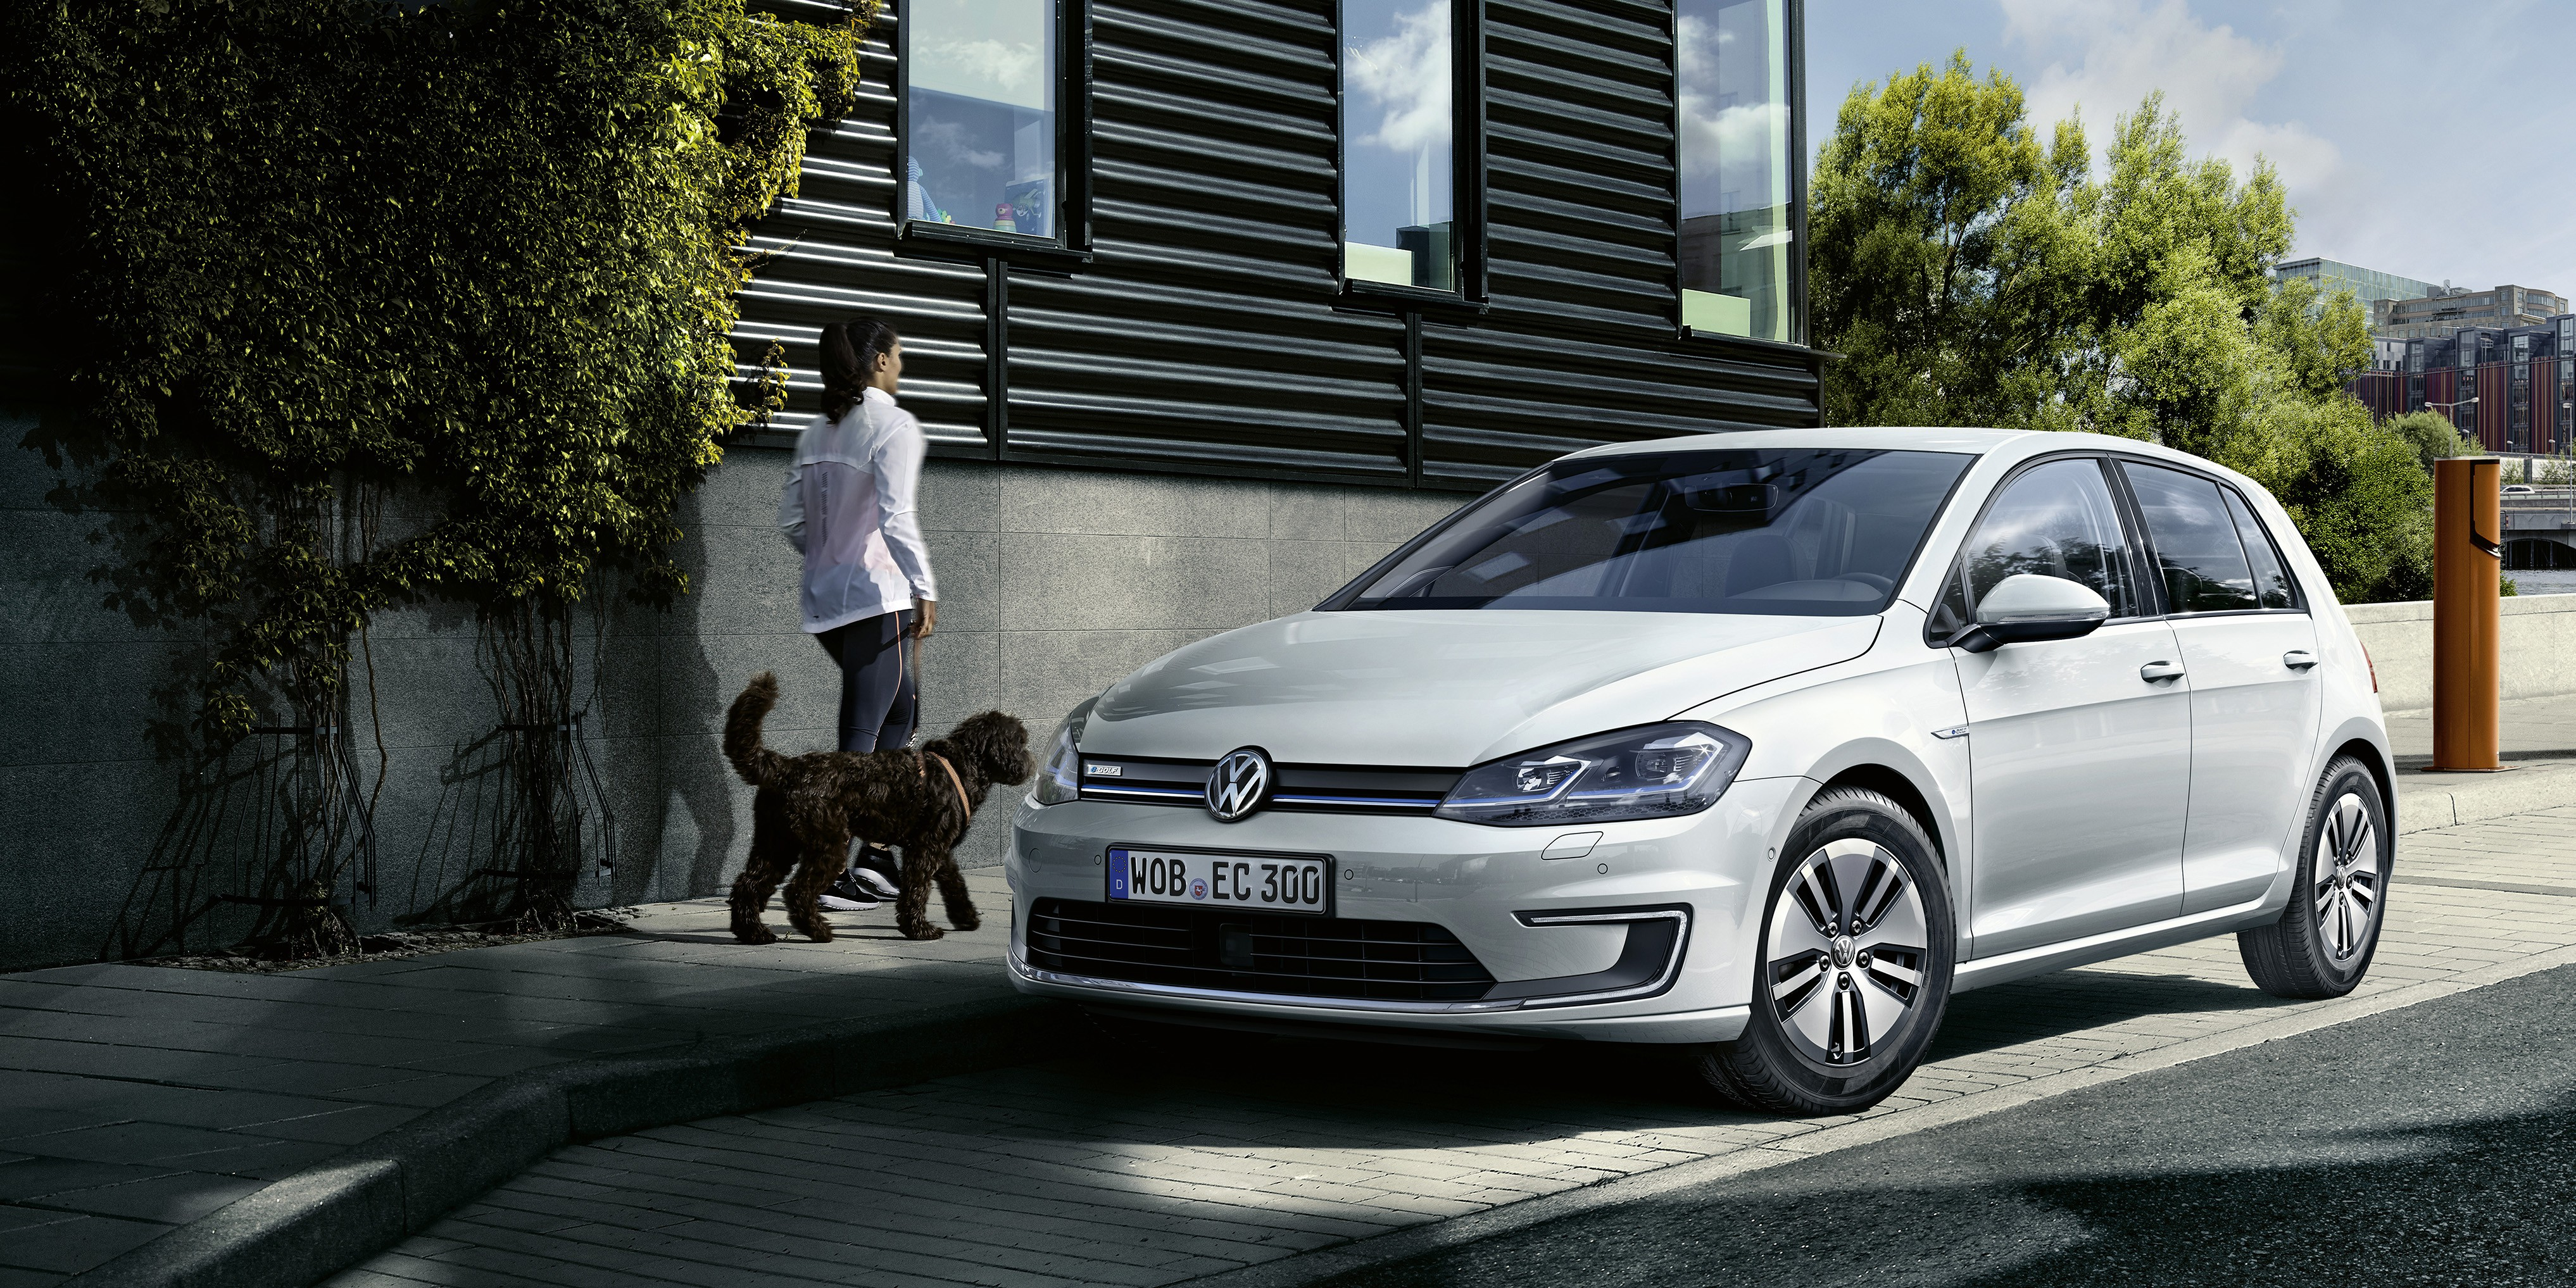 e-Golf on street with woman walking beside it with dog